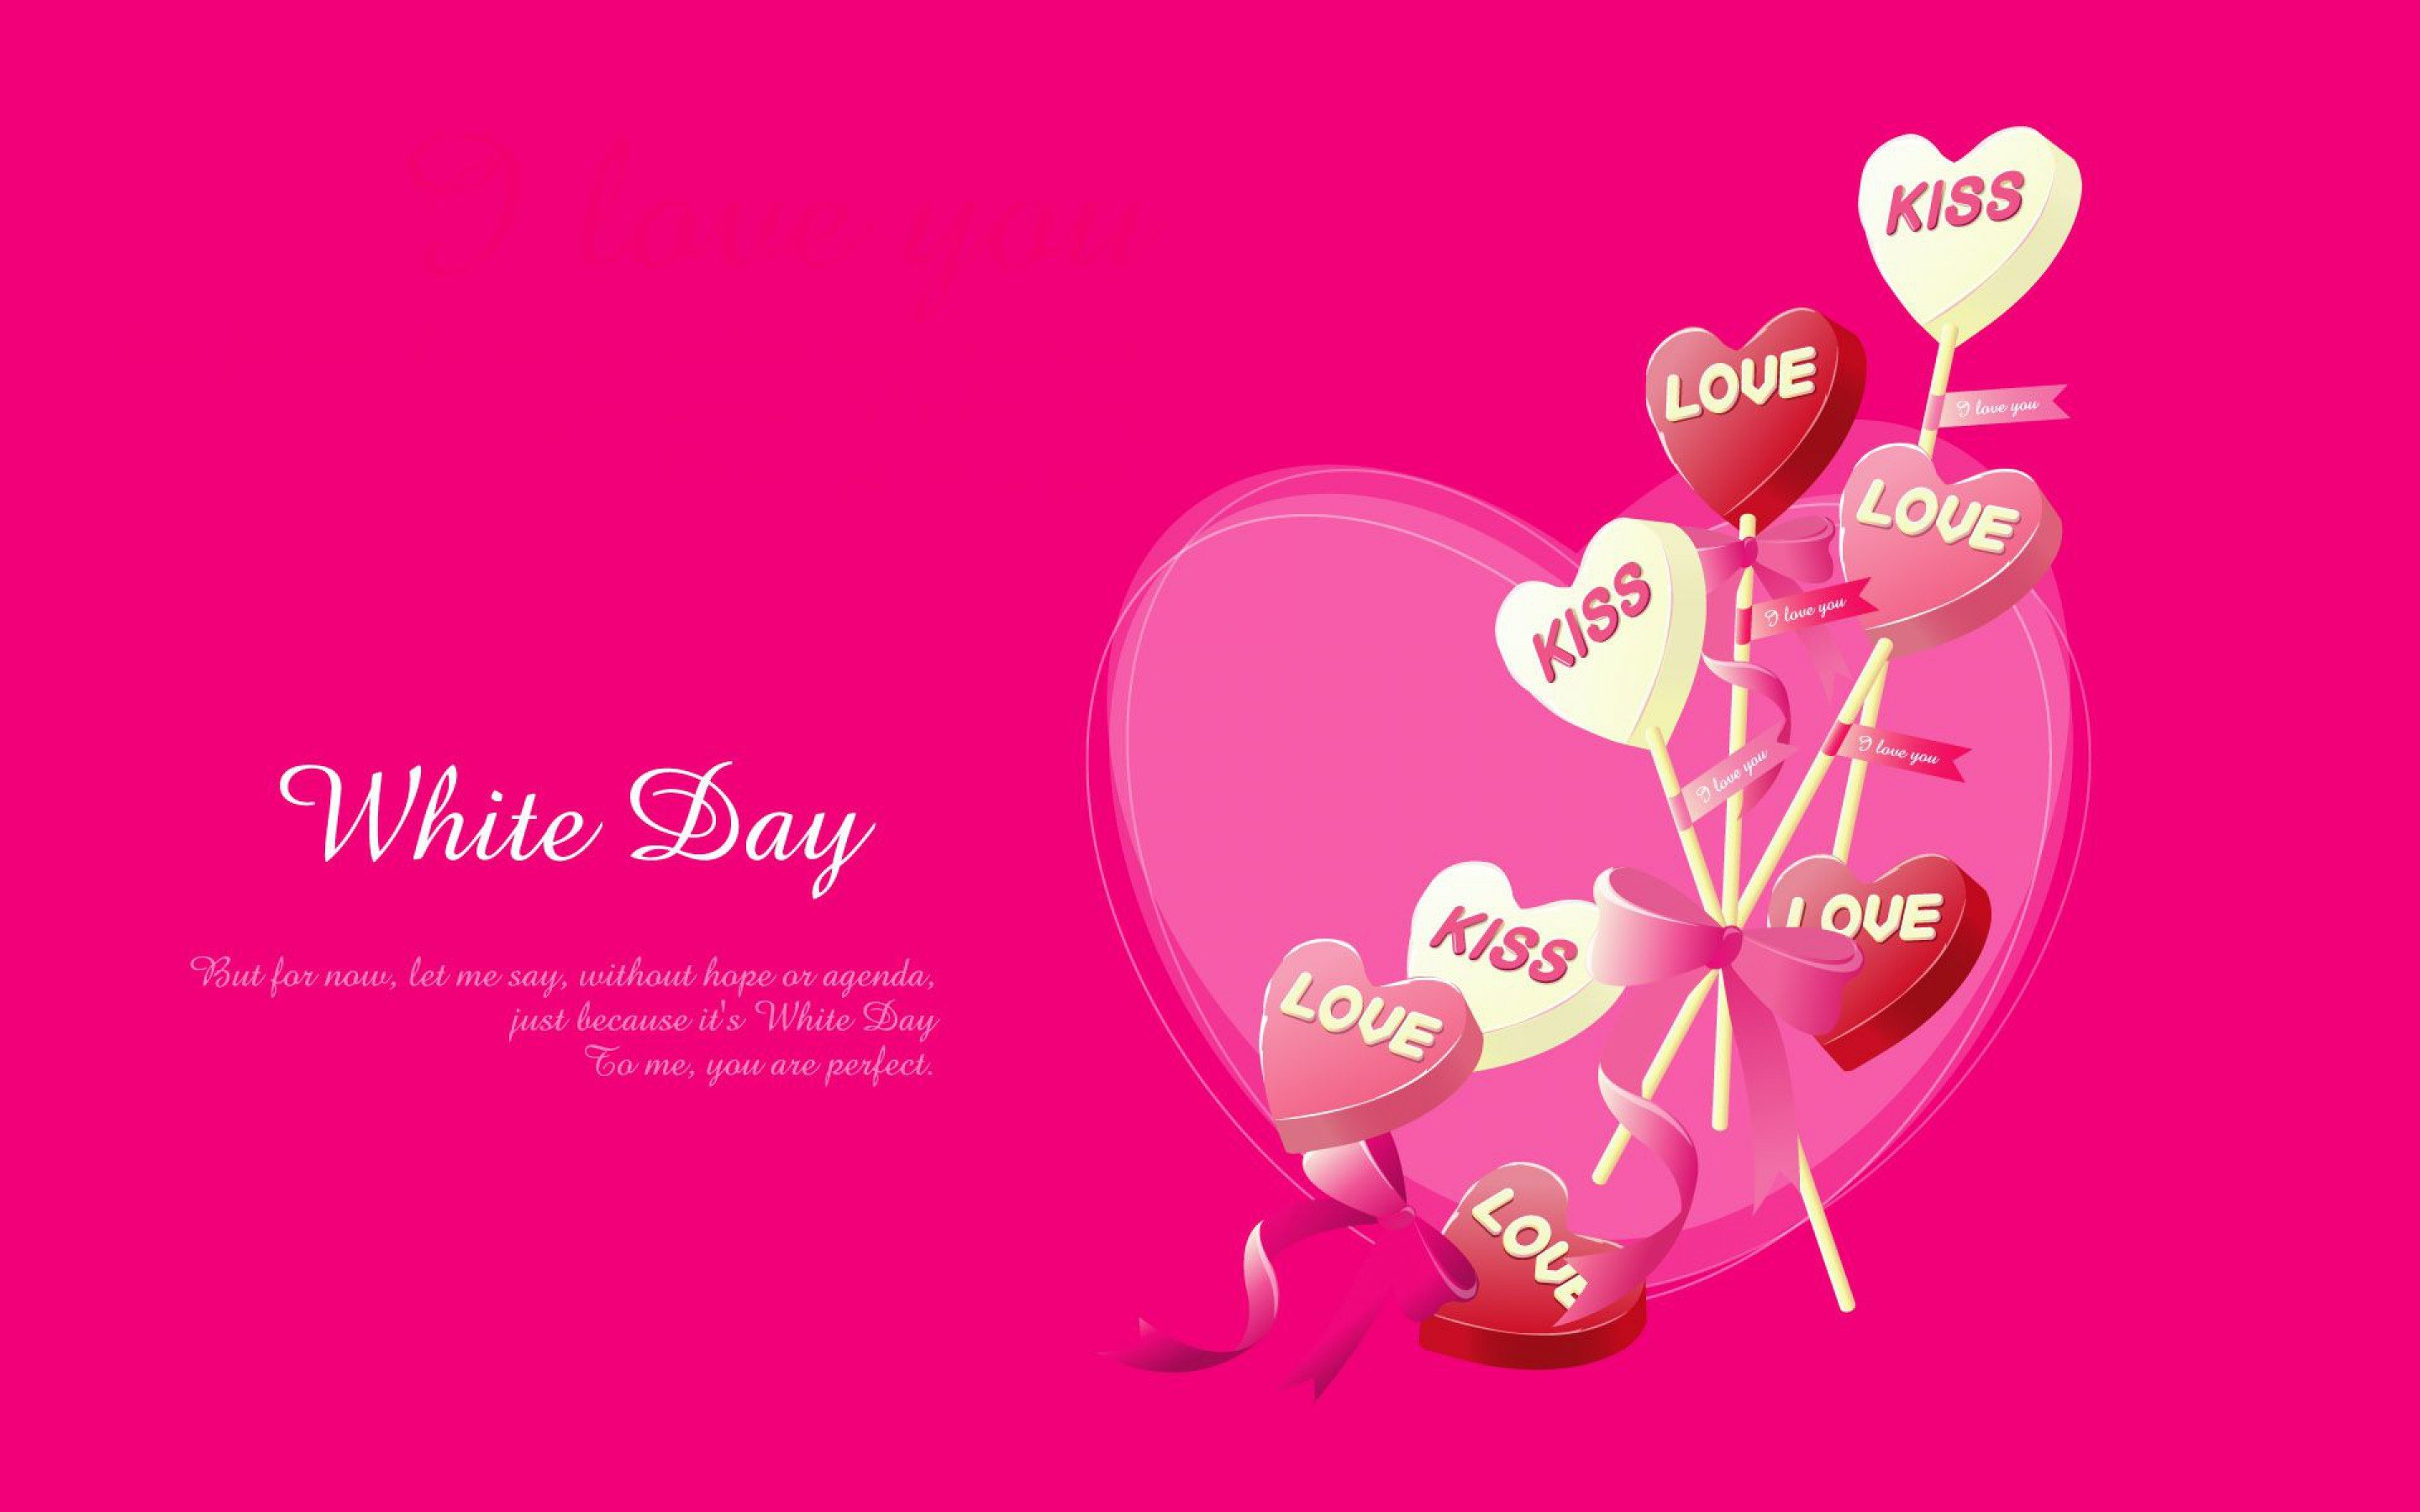 VALENTINES DAY mood love poster